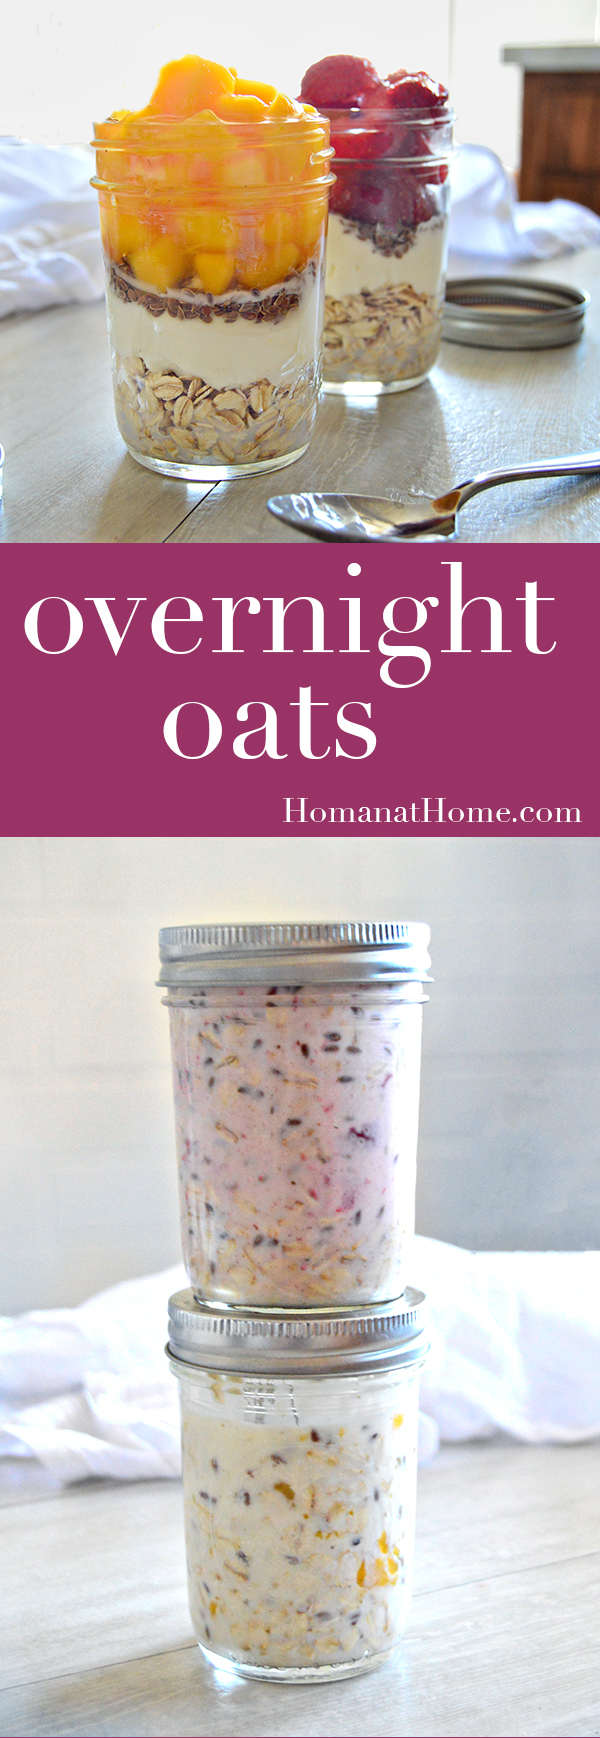 Overnight Oats | Homan at Home